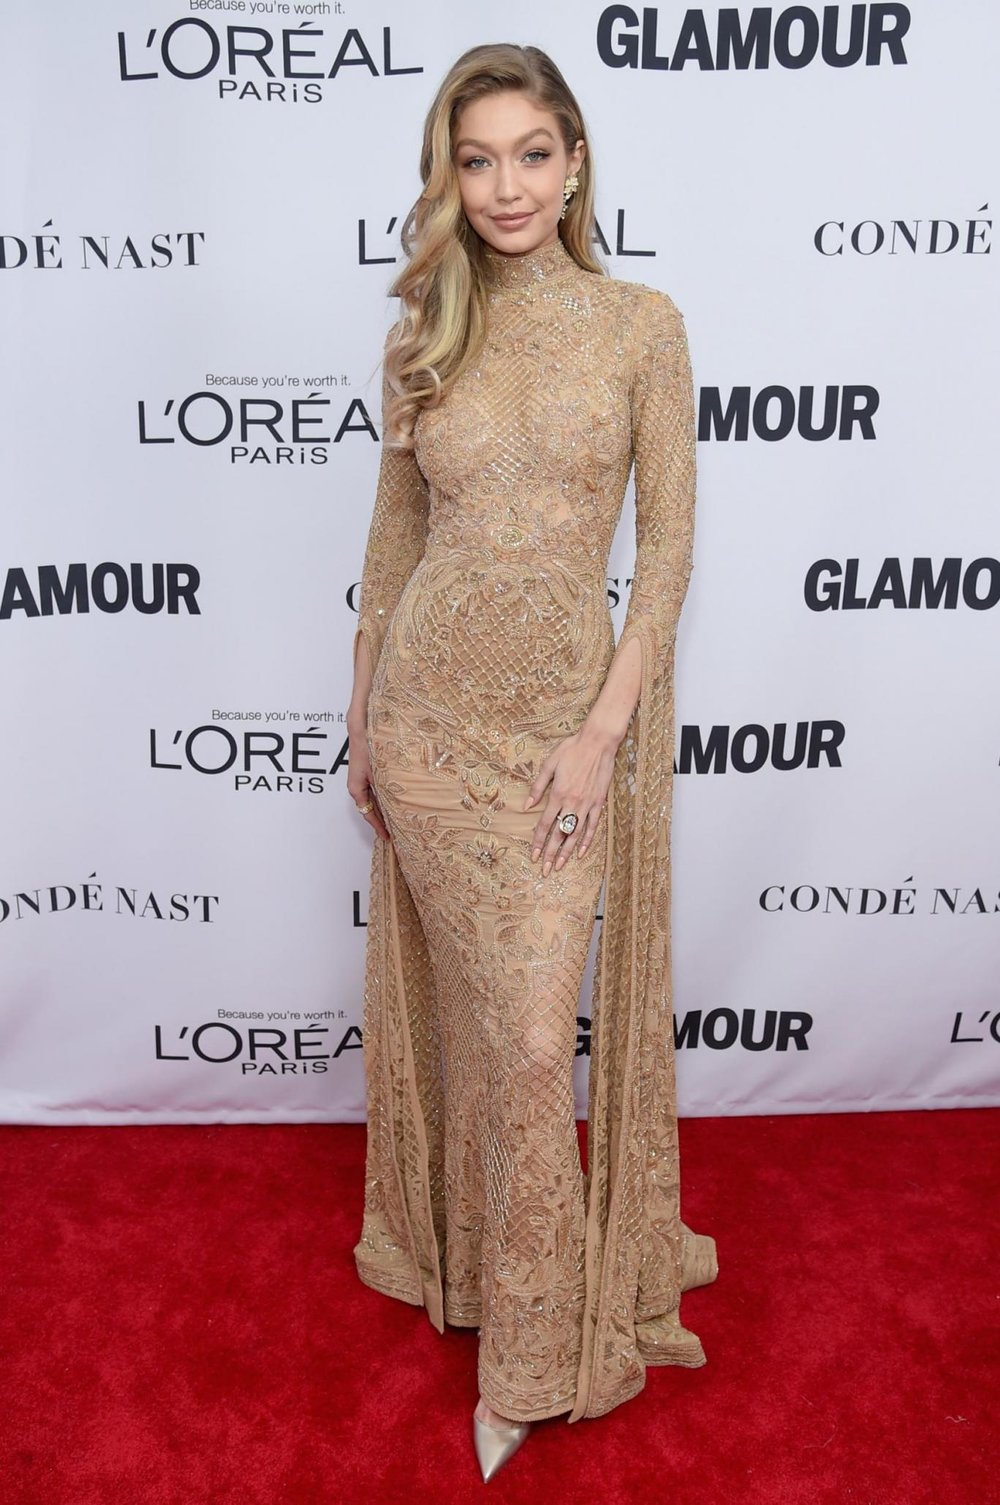 Gigi in Gold - The supermodel appeared in a stunning nude dress with gold embellishment. We're loving those sleeves too, you Supernova.